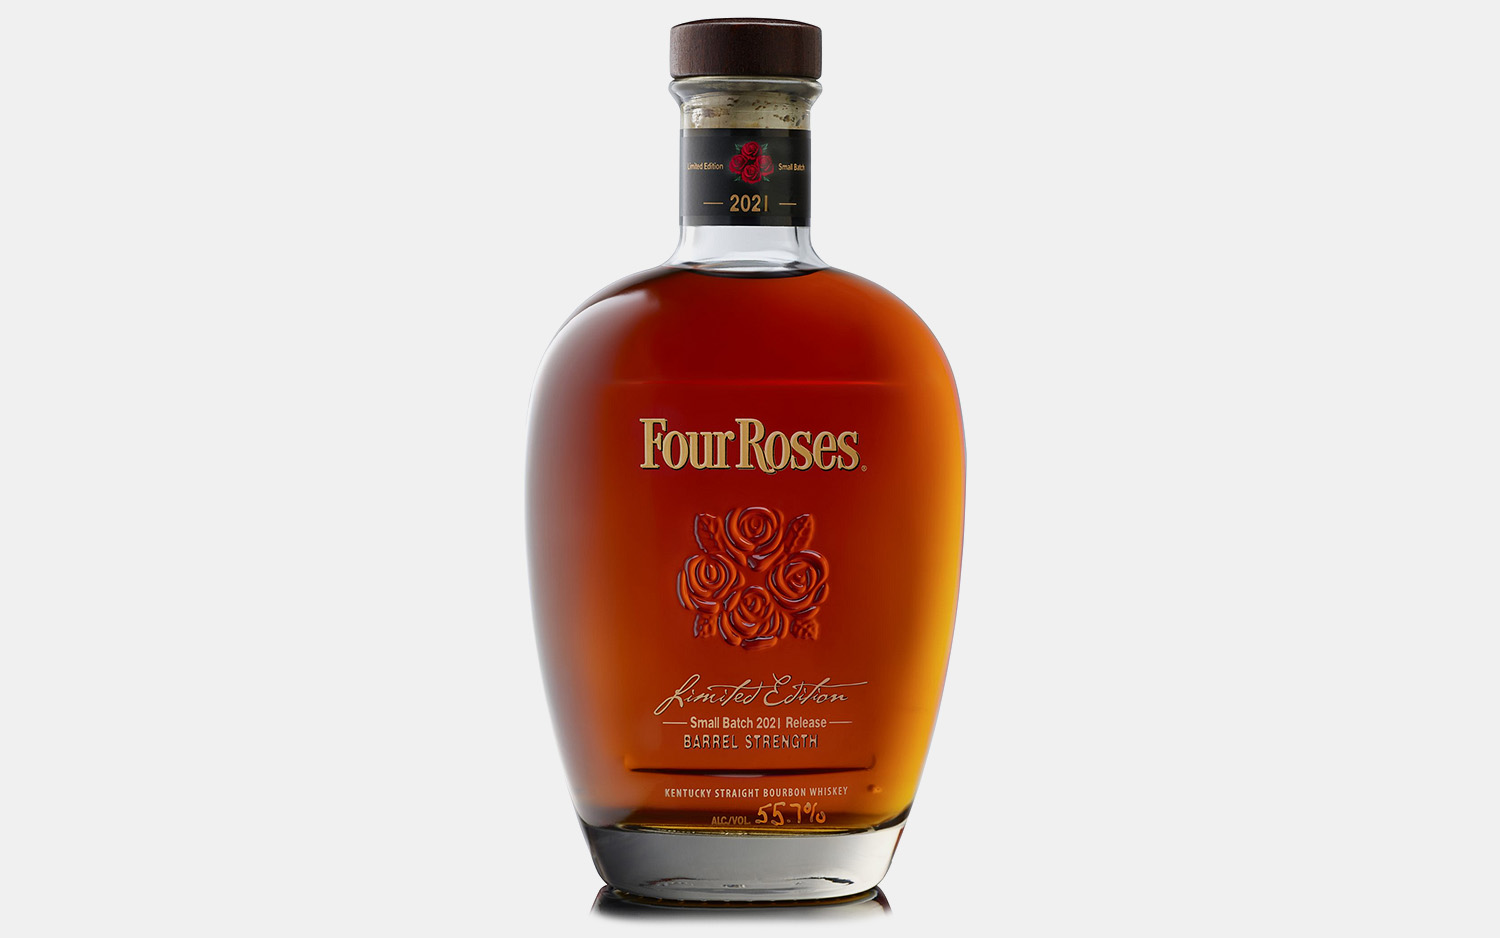 Four Roses 2021 Limited Edition Small Batch Bourbon